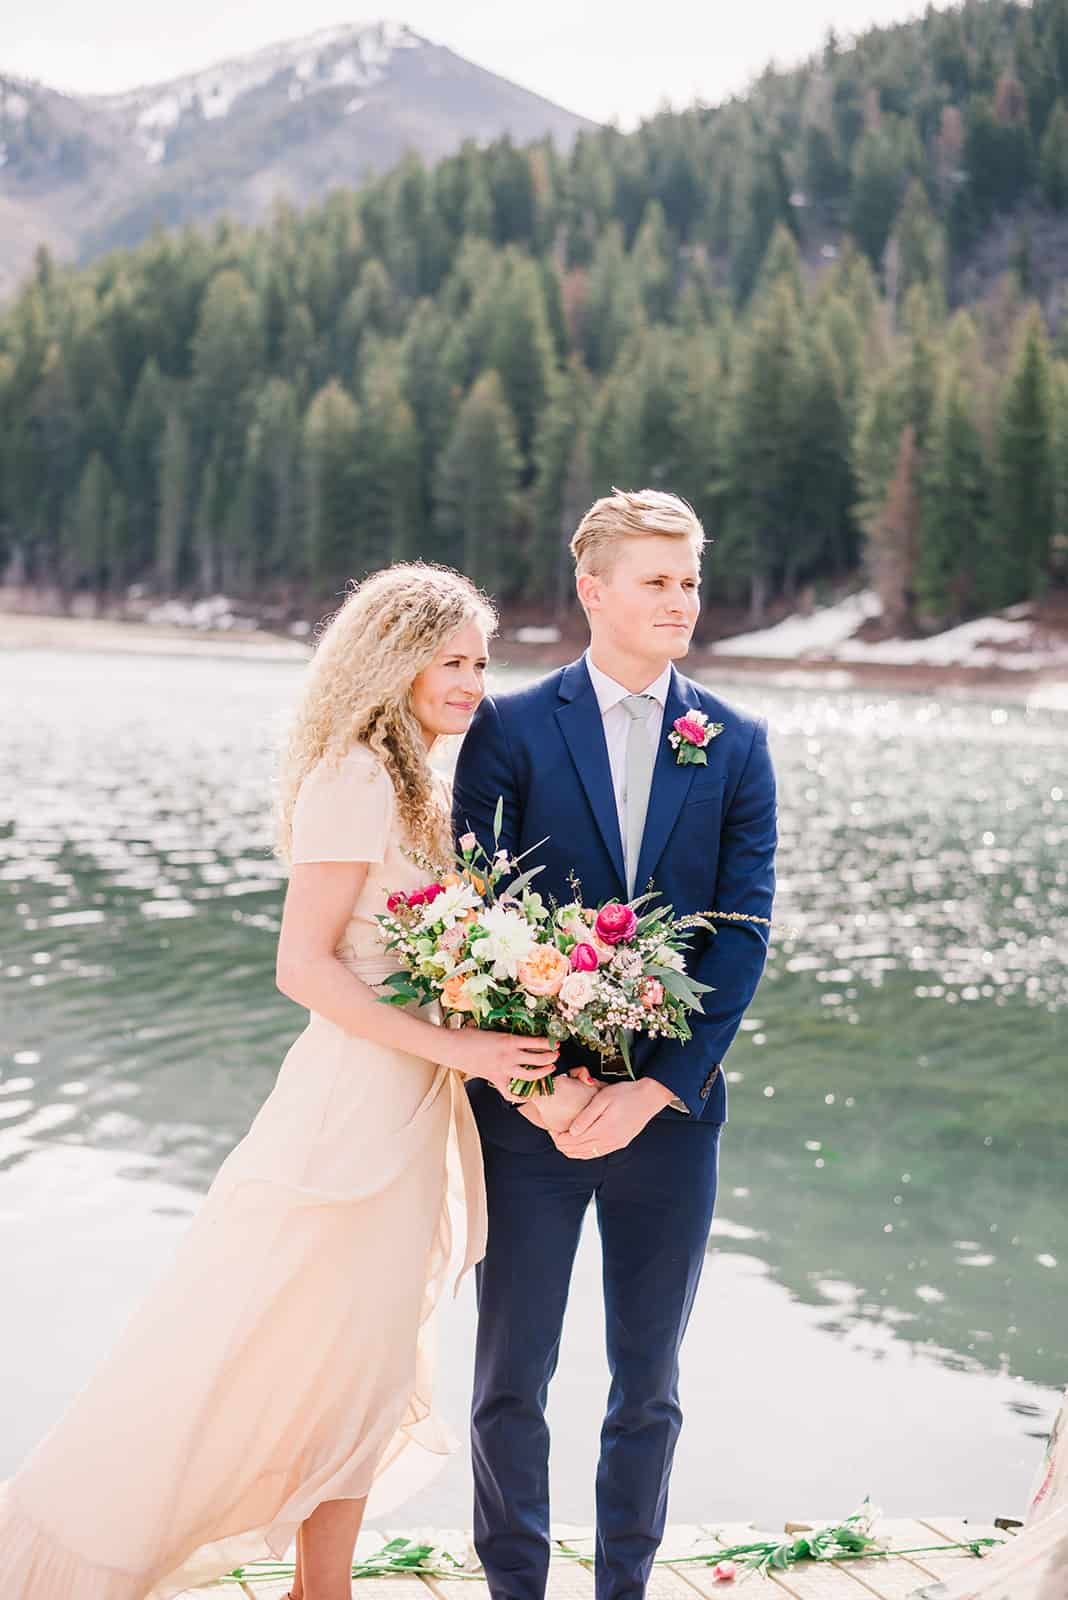 Bride in flowy blush dress holds bouquet with pink, coral and blush flowers. Groom stands next to her in a blue suit in outdoor wedding on the dock at tibble fork, Utah.